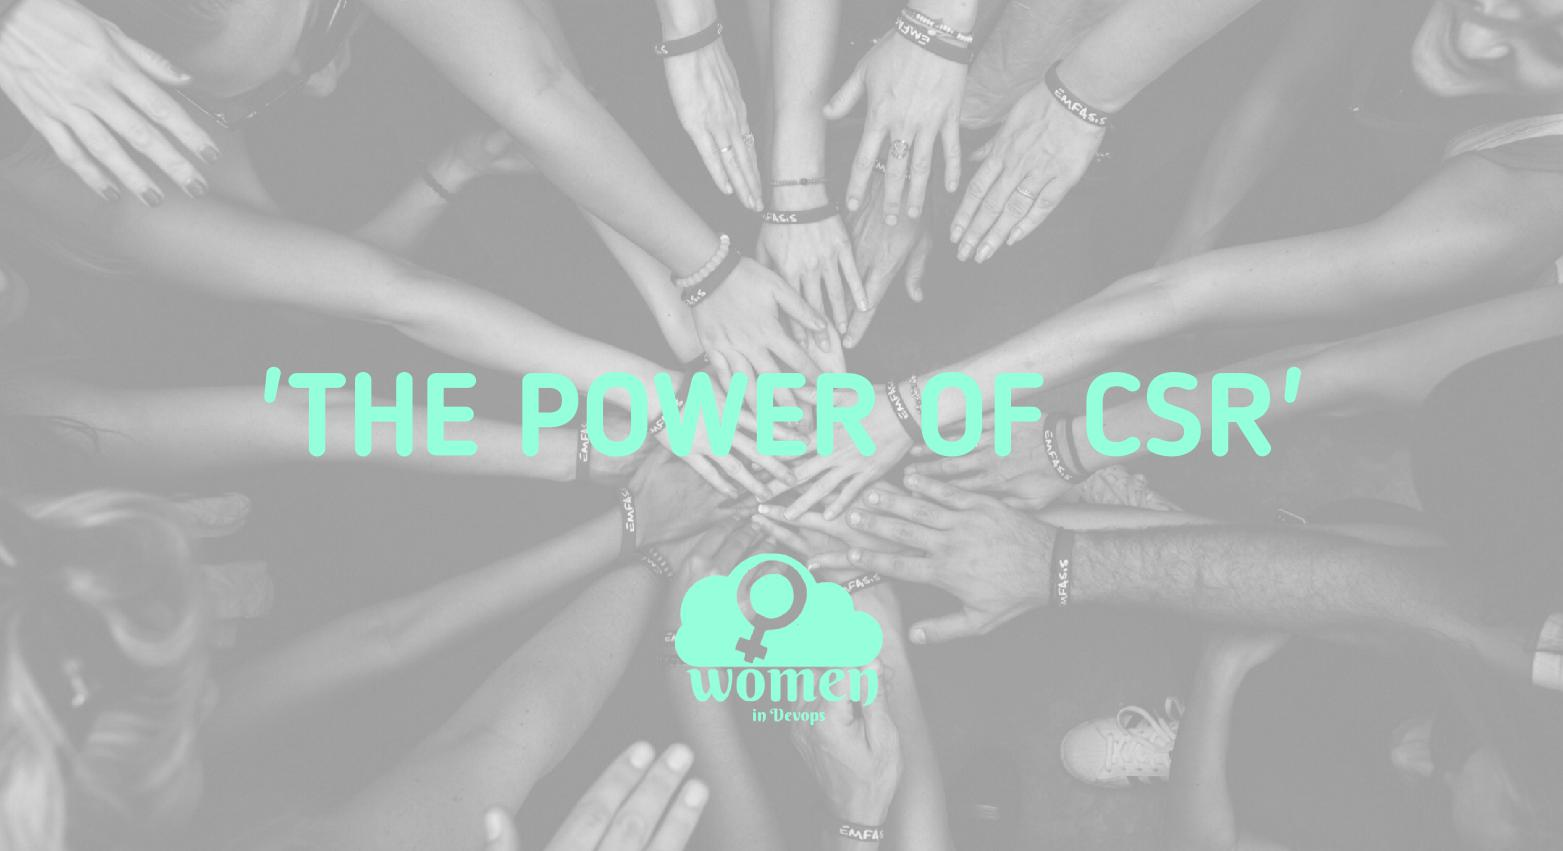 Article: The Power of CSR